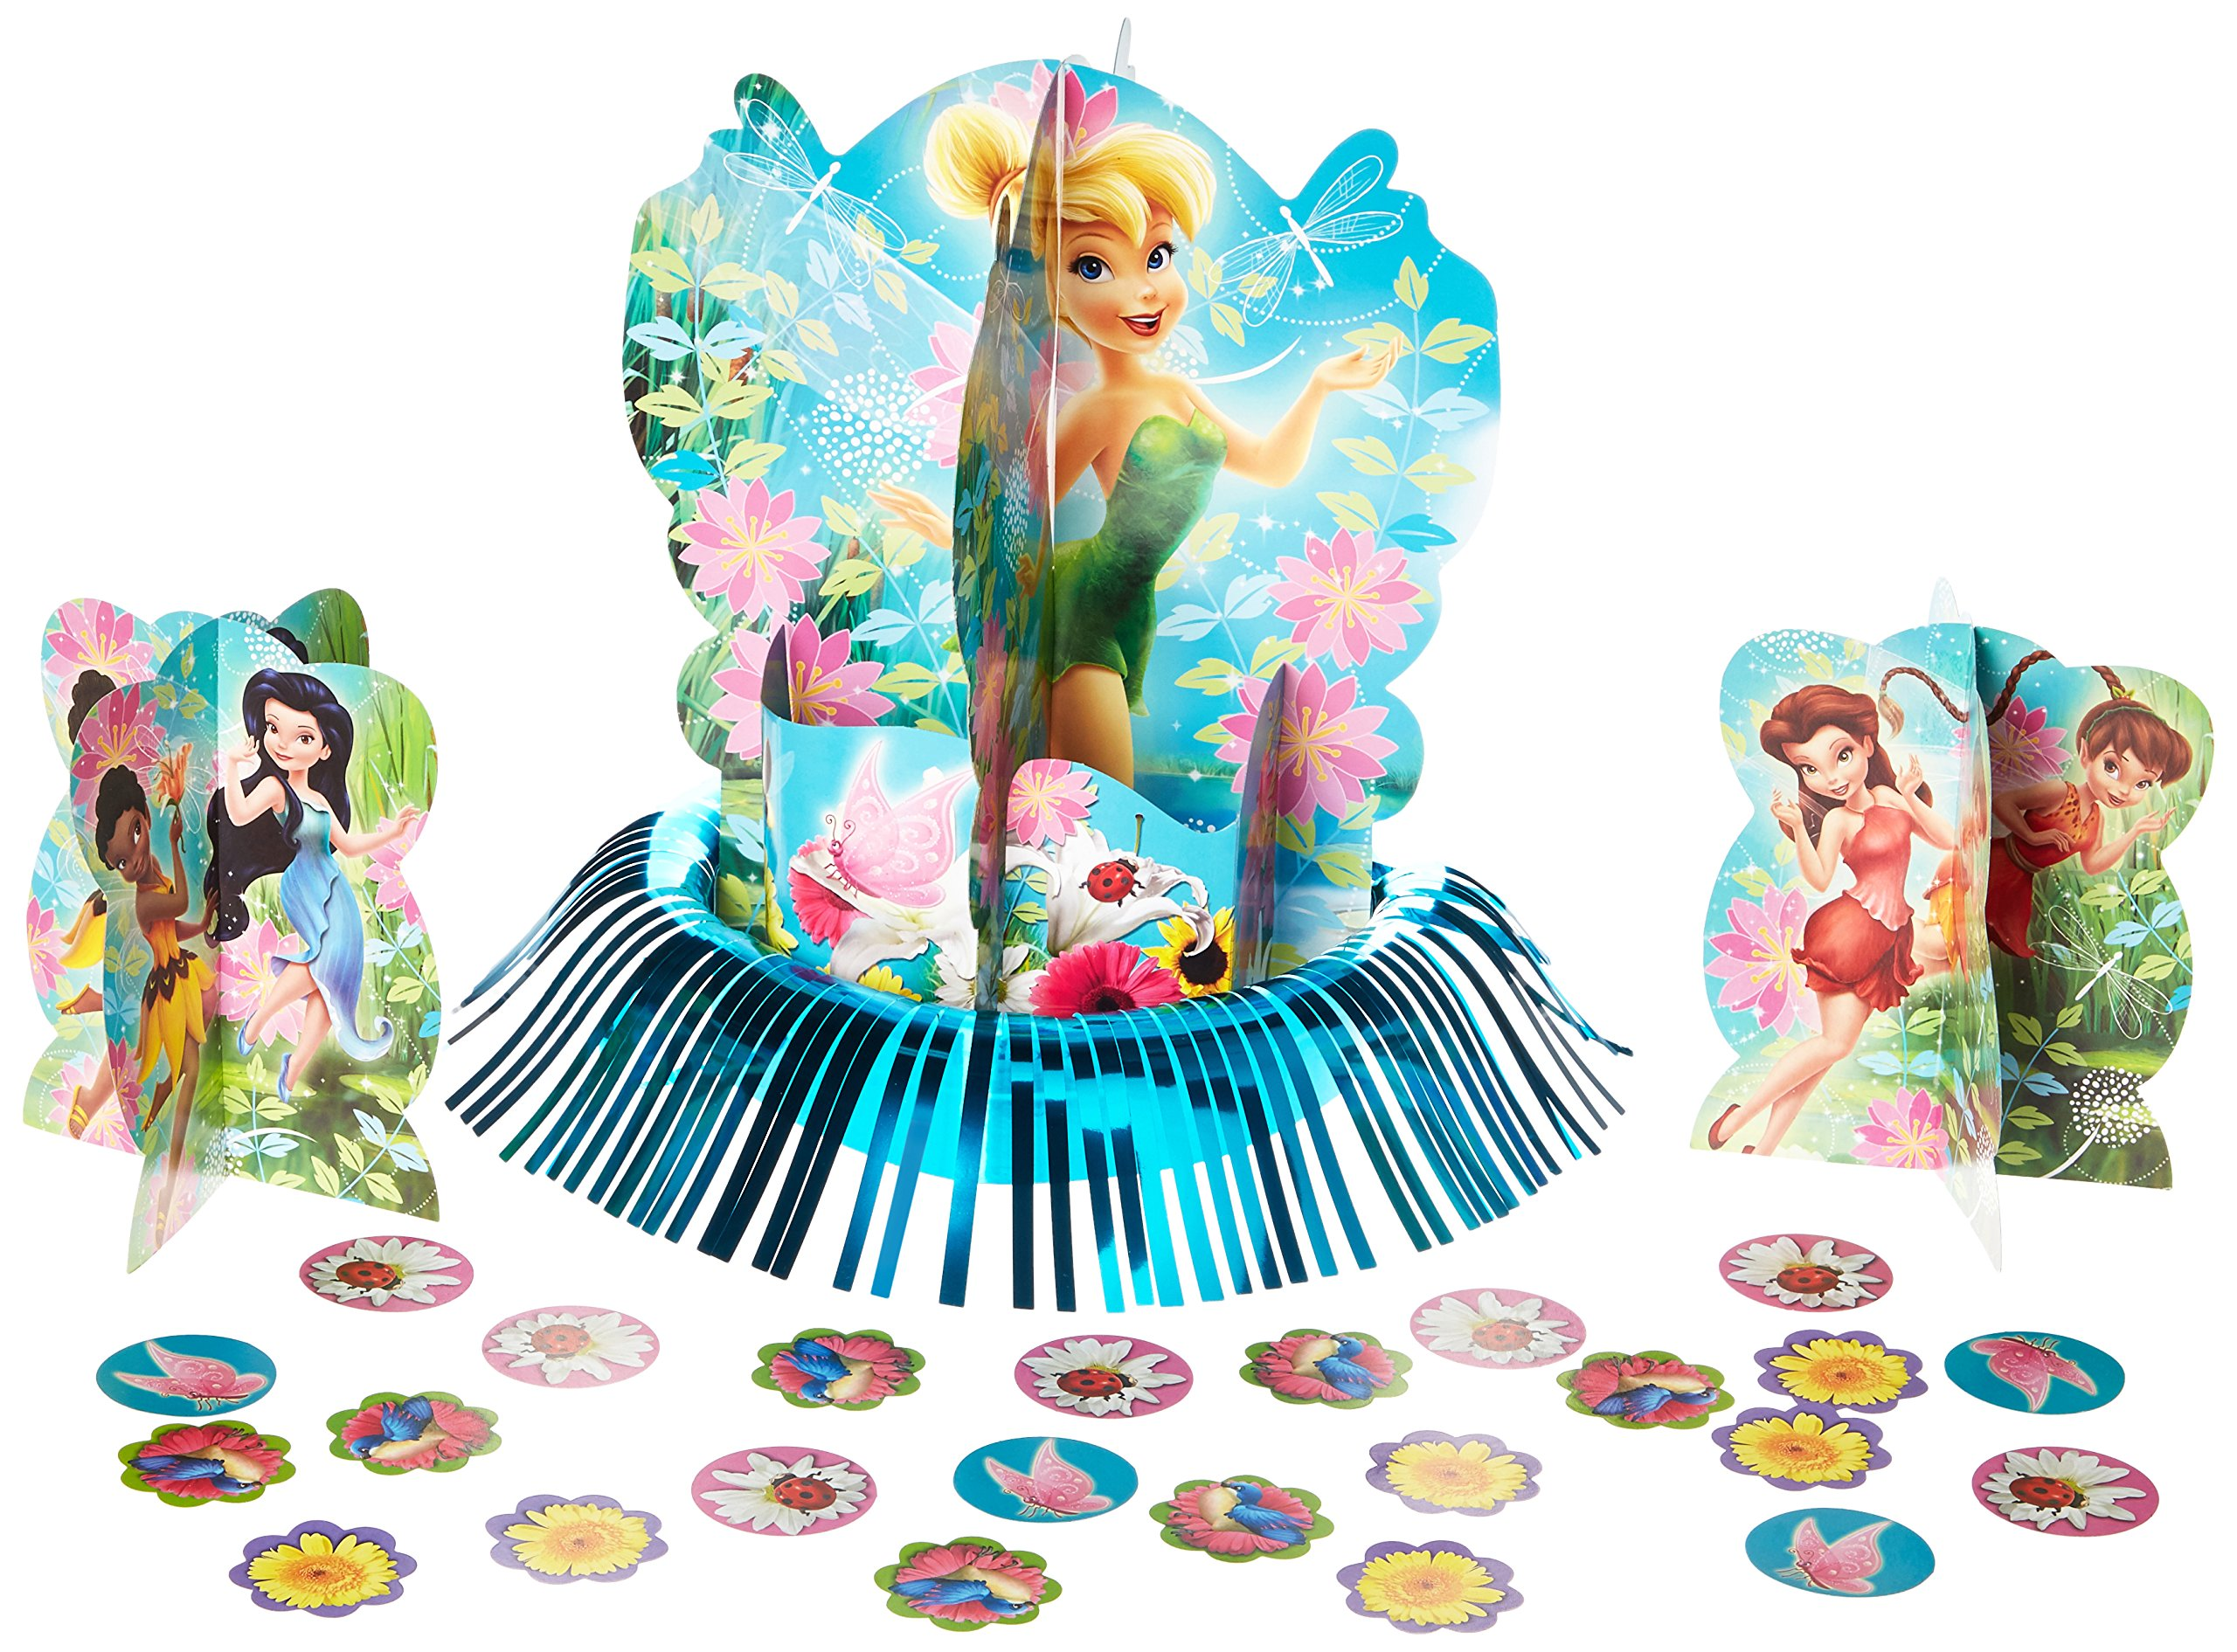 Disney Tinkerbell and the Fairies 3-D Birthday Party Table Decorating Kit, Multi Color, 12 3/5''. by Amscan